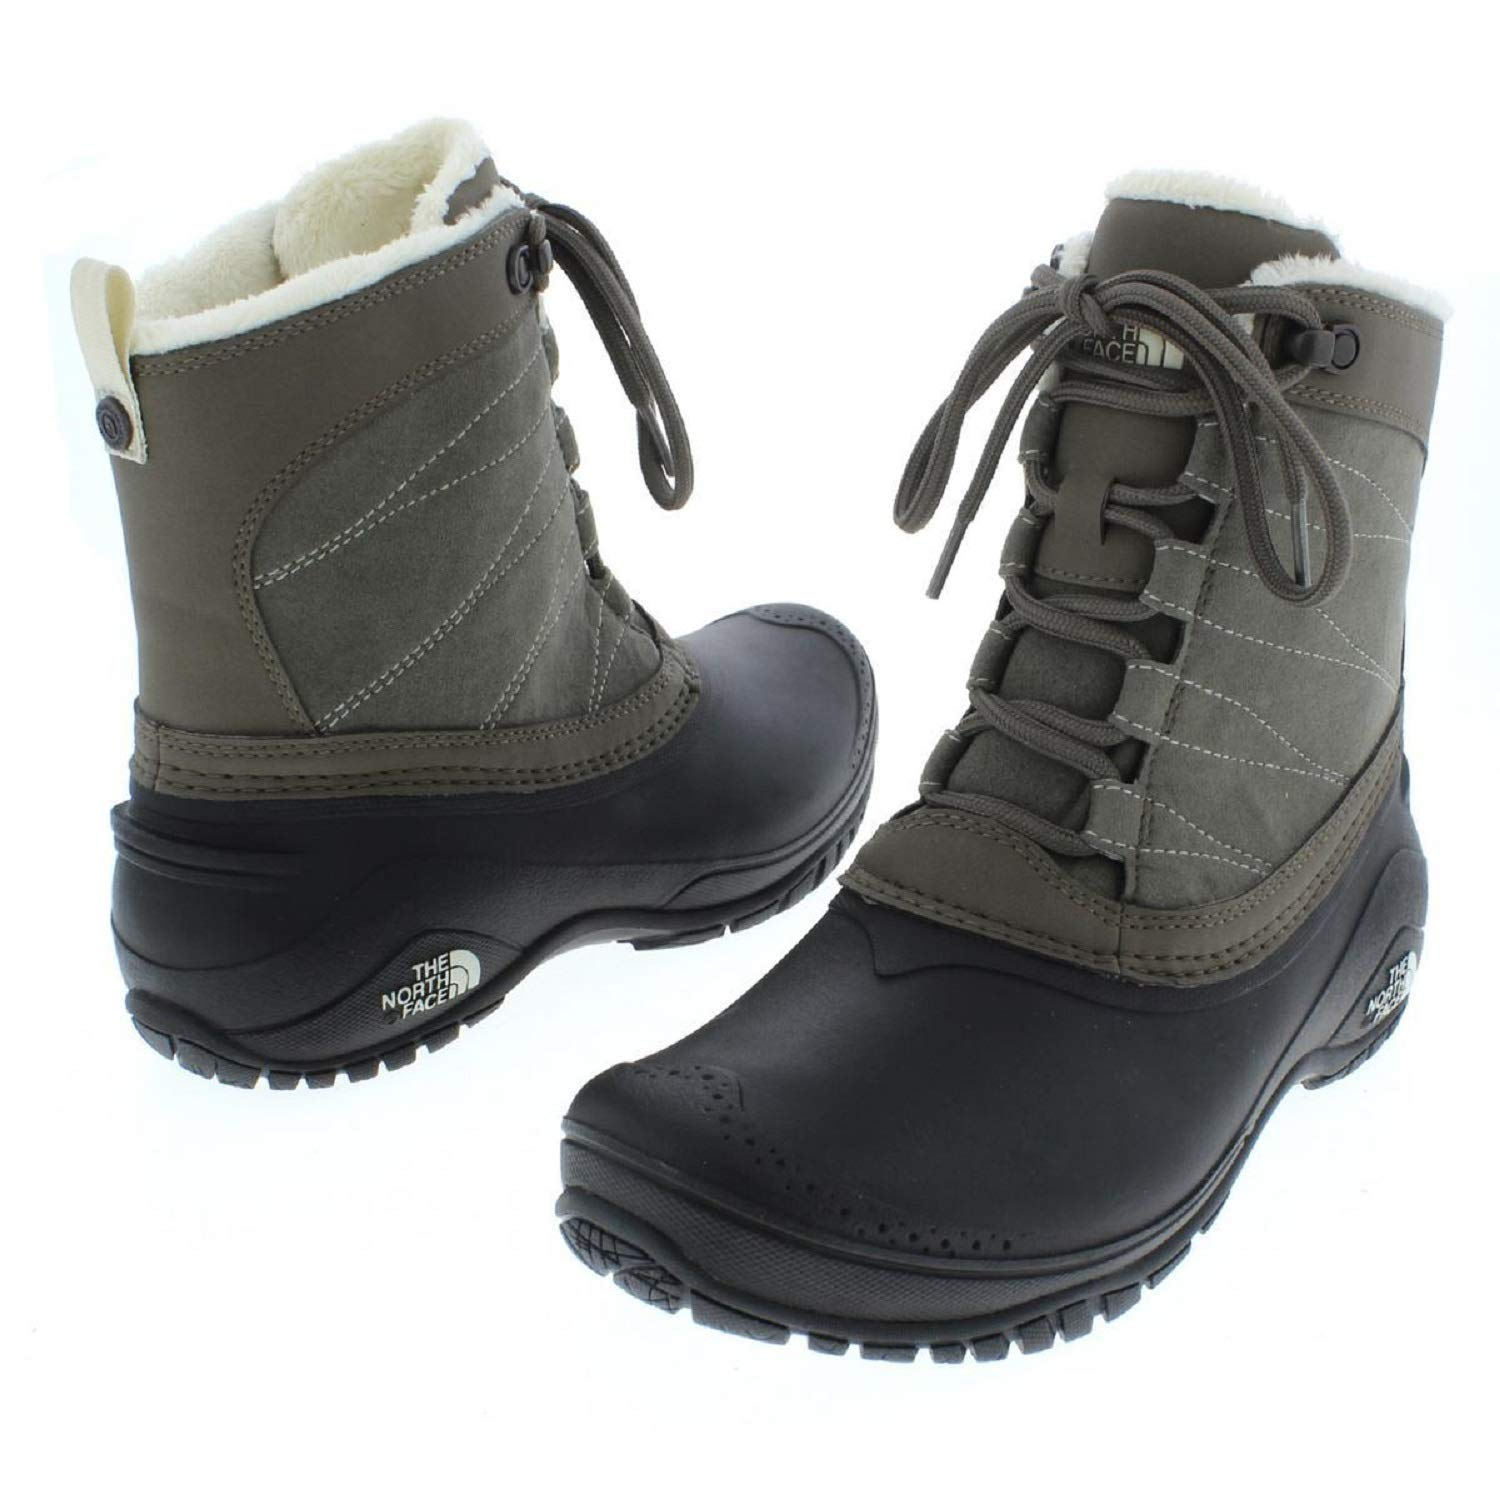 7bbe680bb The North Face Womens Stormkat Closed Toe Ankle Cold Weather Boots